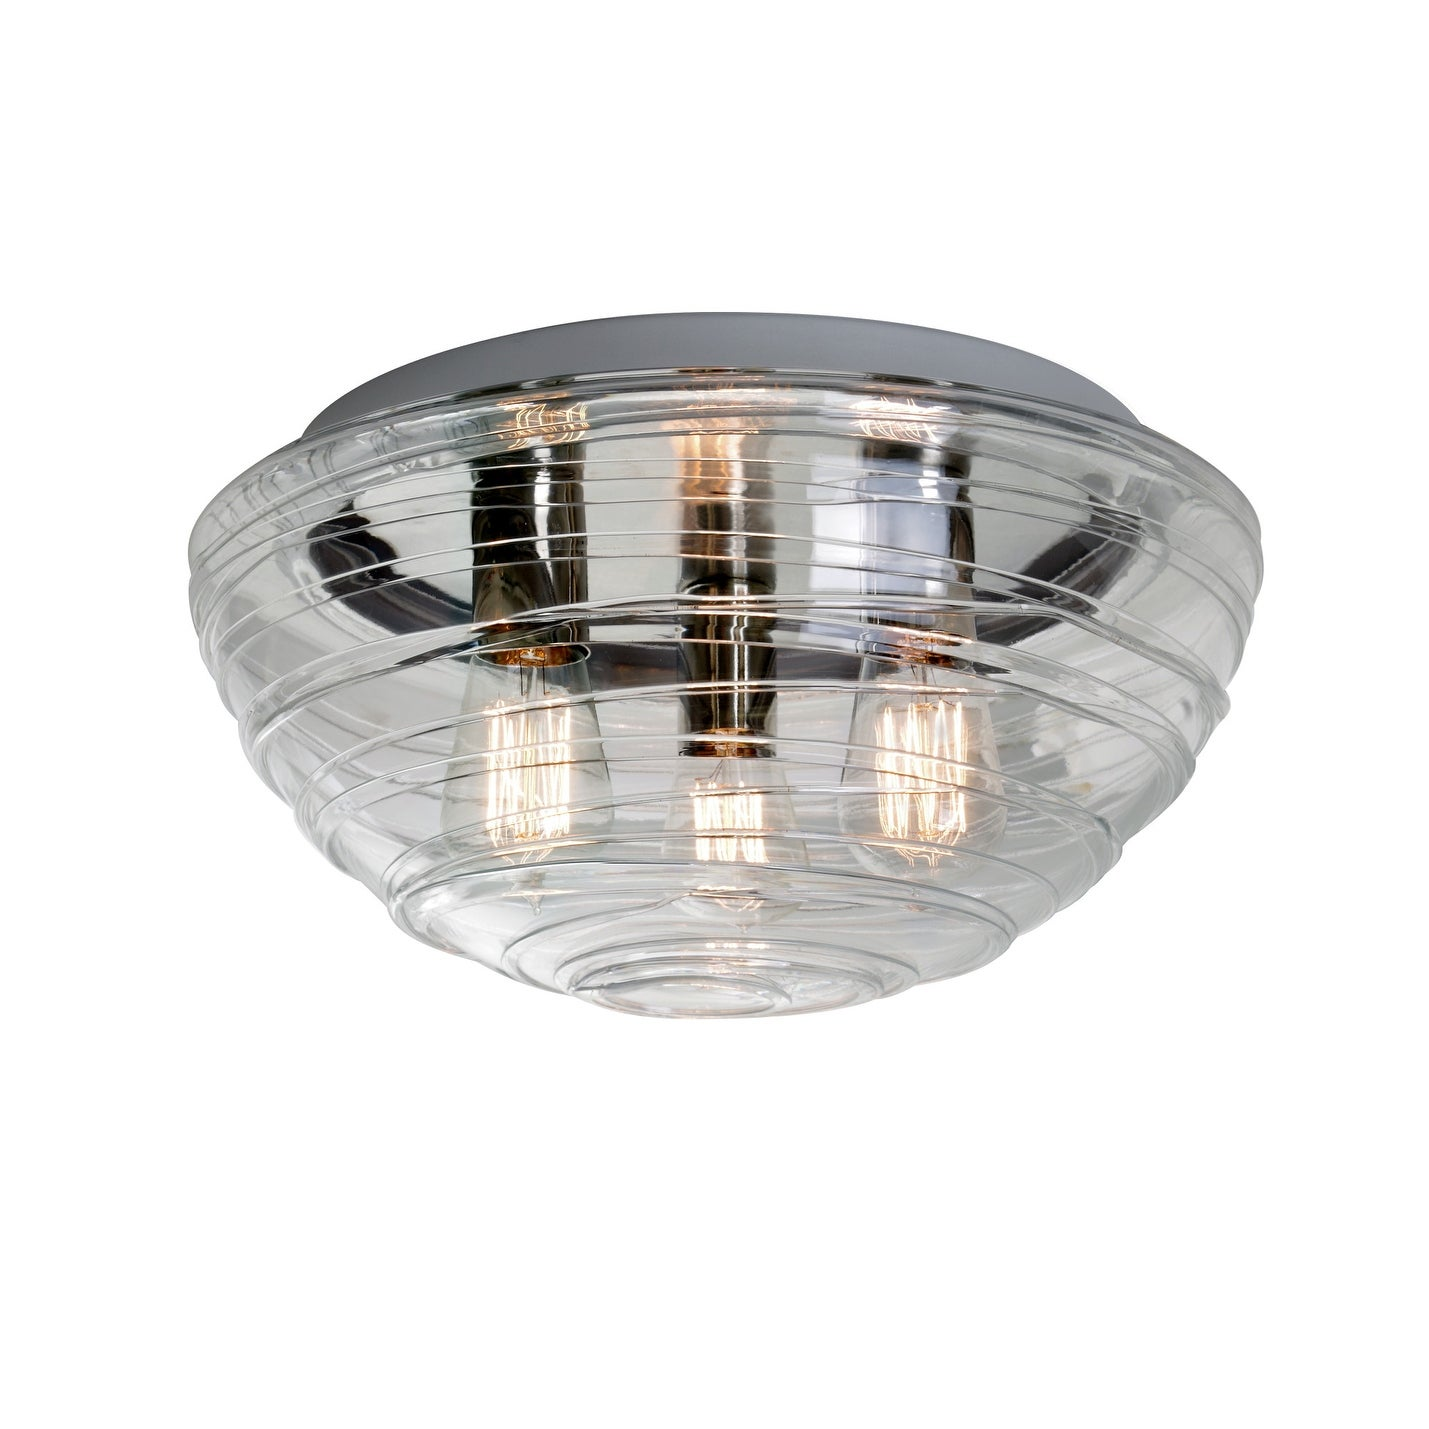 Besa Lighting 906361c Edi Wave 3 Light Flush Mount Ceiling Fixture With Clear Shade And Vintage Edison Bulb